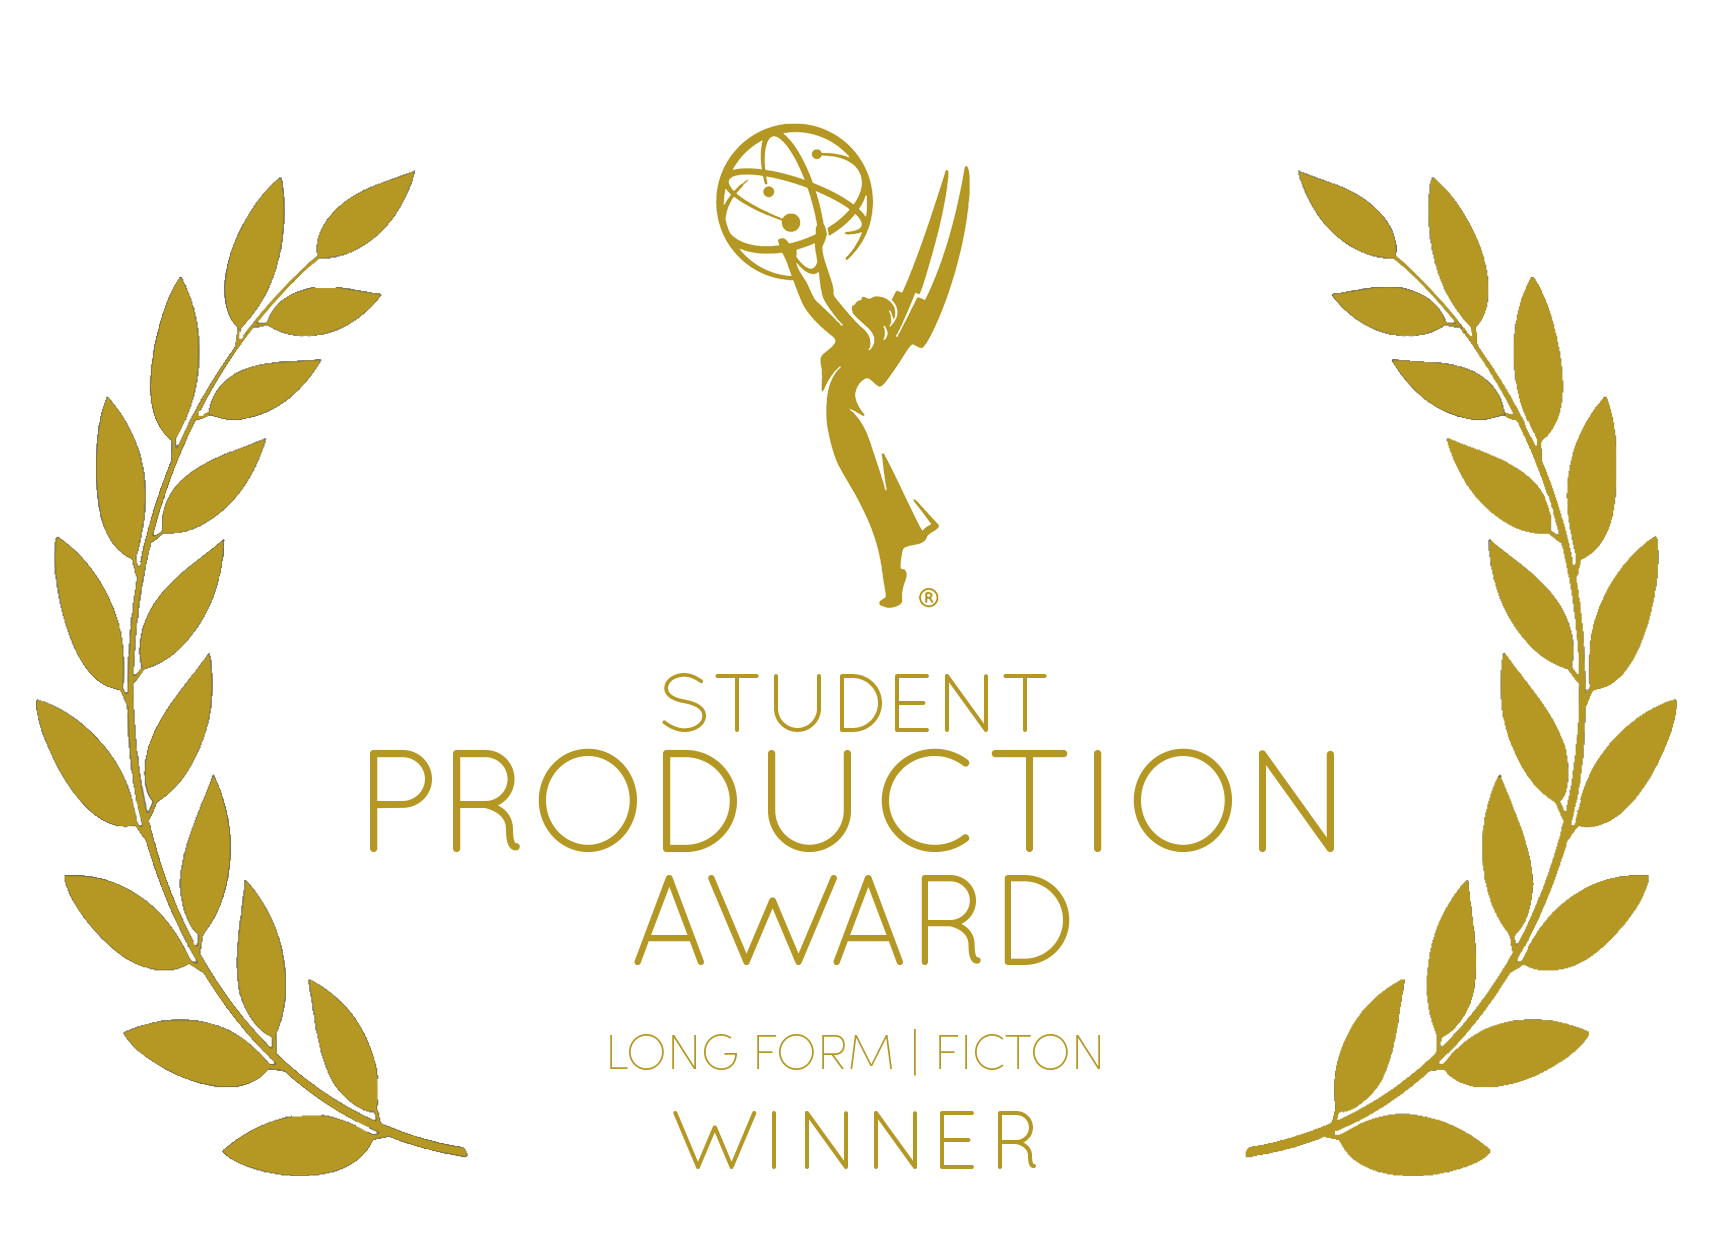 Student Production Award Laurel.png